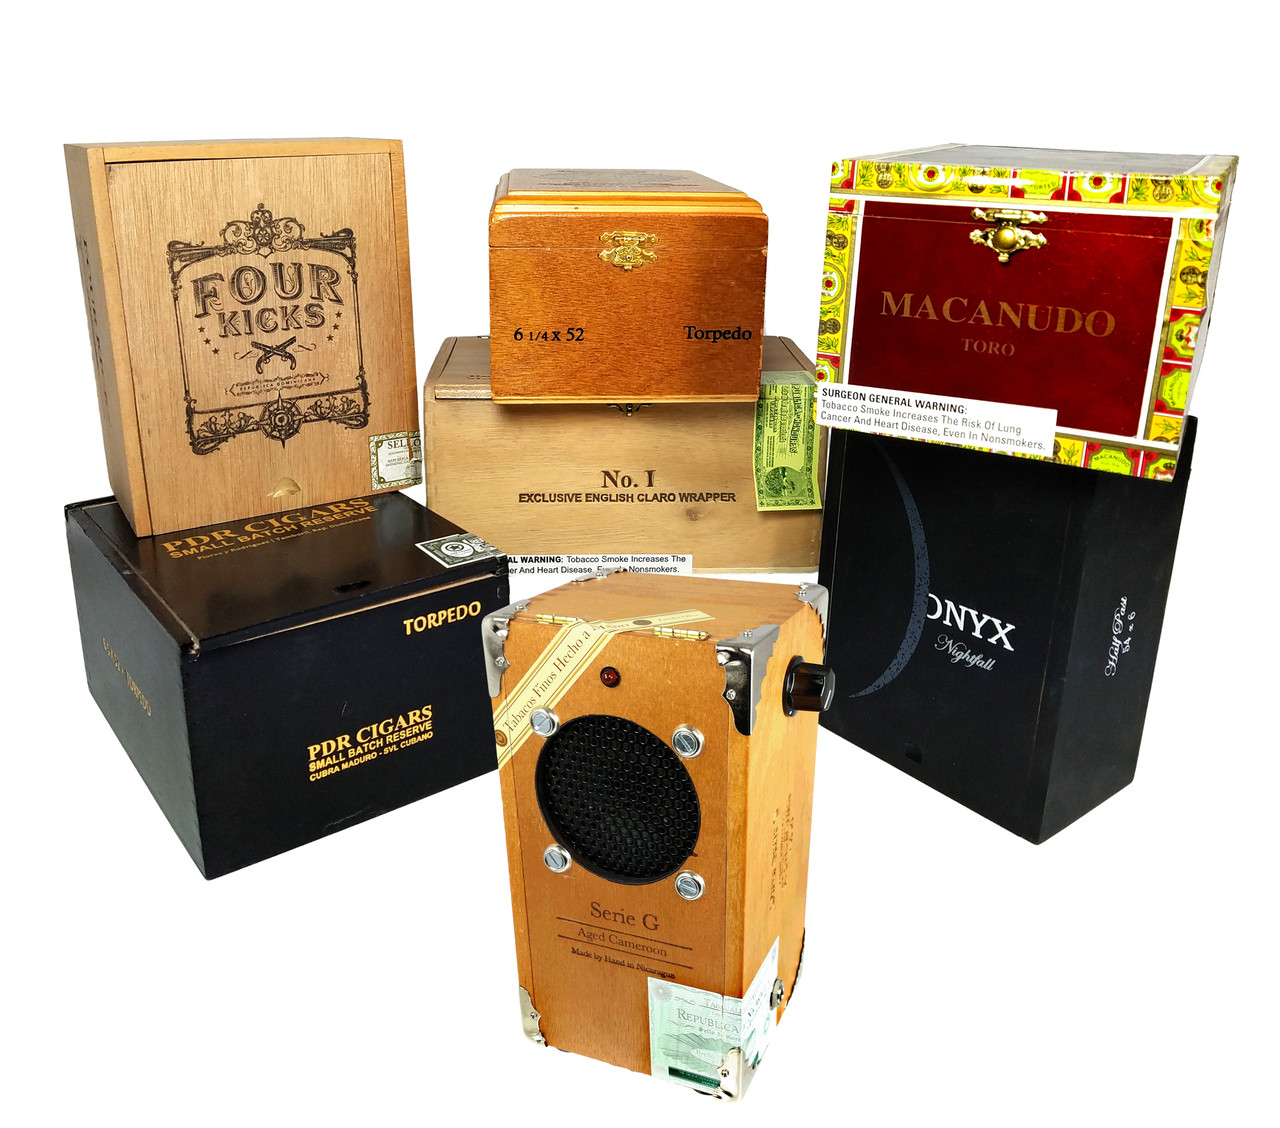 Easy Amp For Cigar Box Wiring Diagrams Library Lm386 Diagram Guitar Amplifier Kit With All Wood Pre